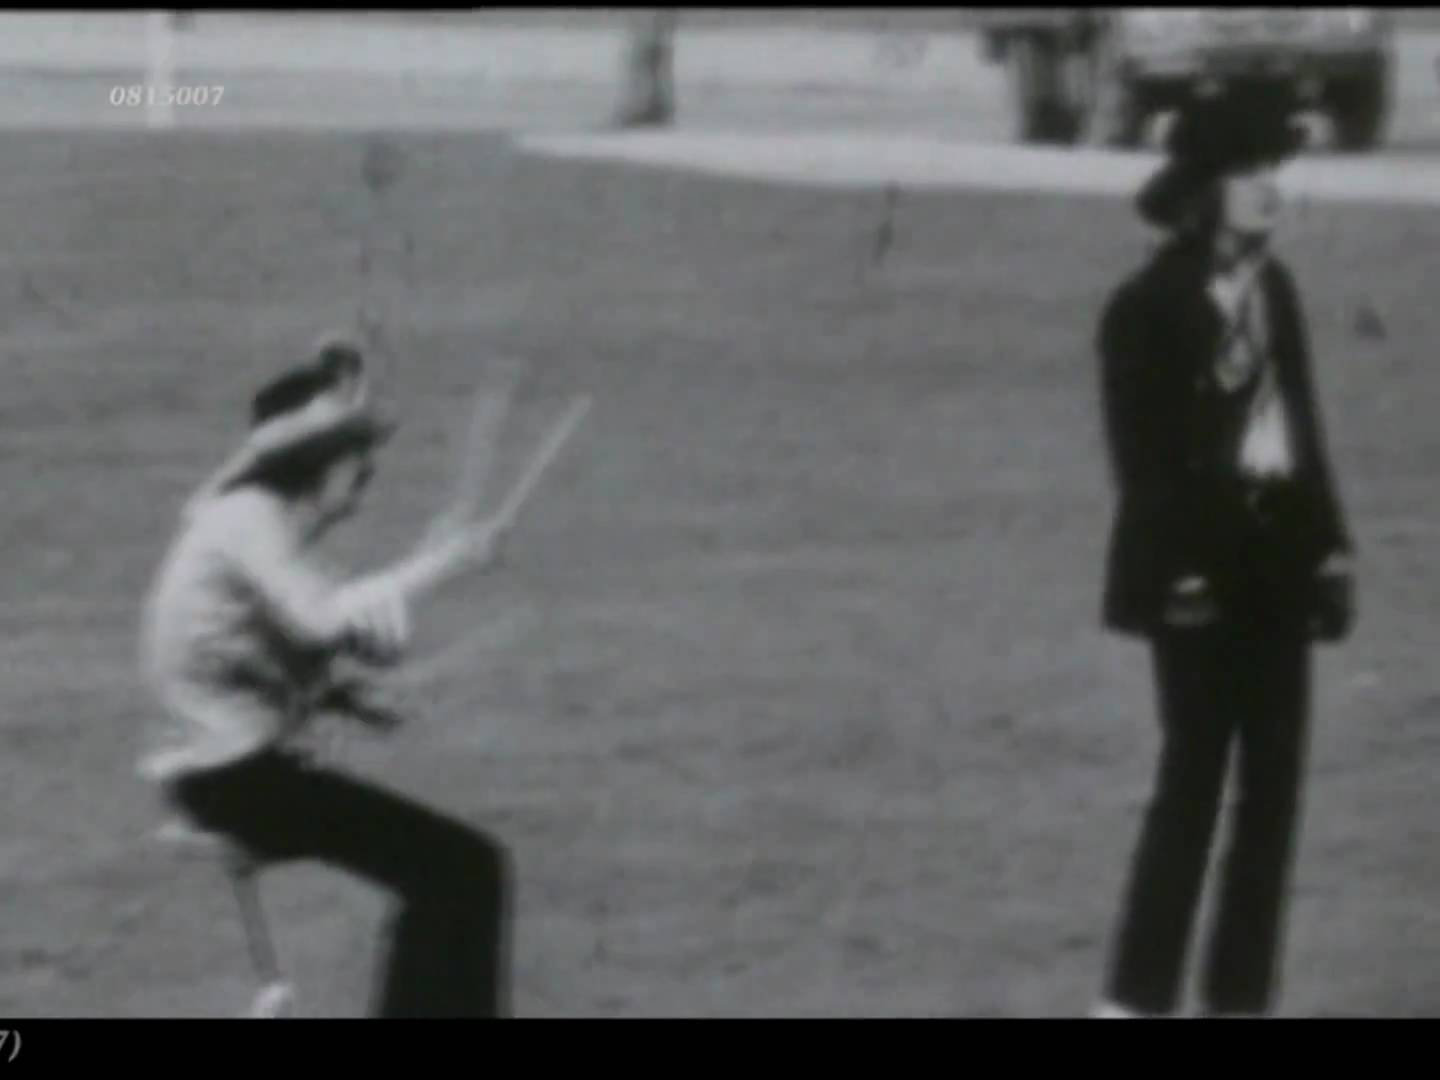 Pink Floyd - See Emily Play (1967) HD 0815007 - YouTube